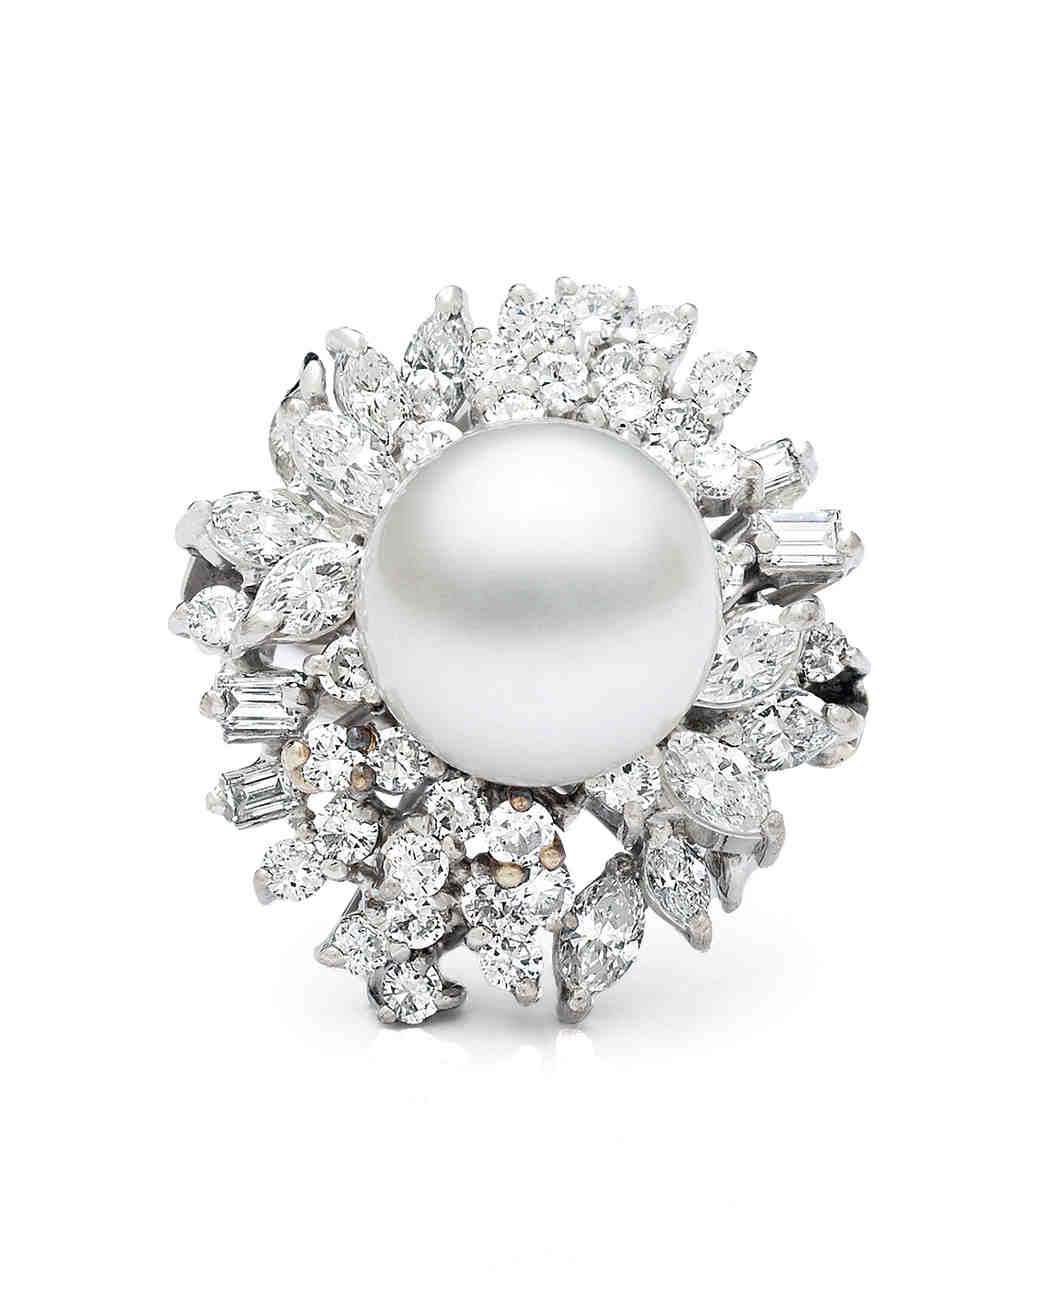 Colin Cowie Pearl Engagement Ring